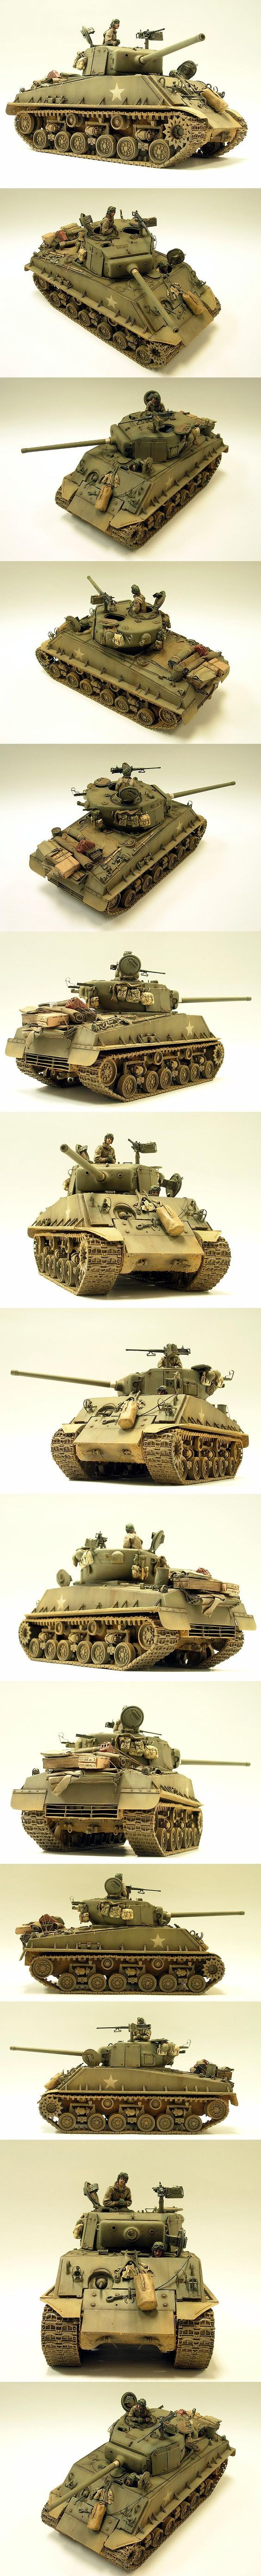 Sherman M4A3E8 (76mm) 1/35 Scale Model: